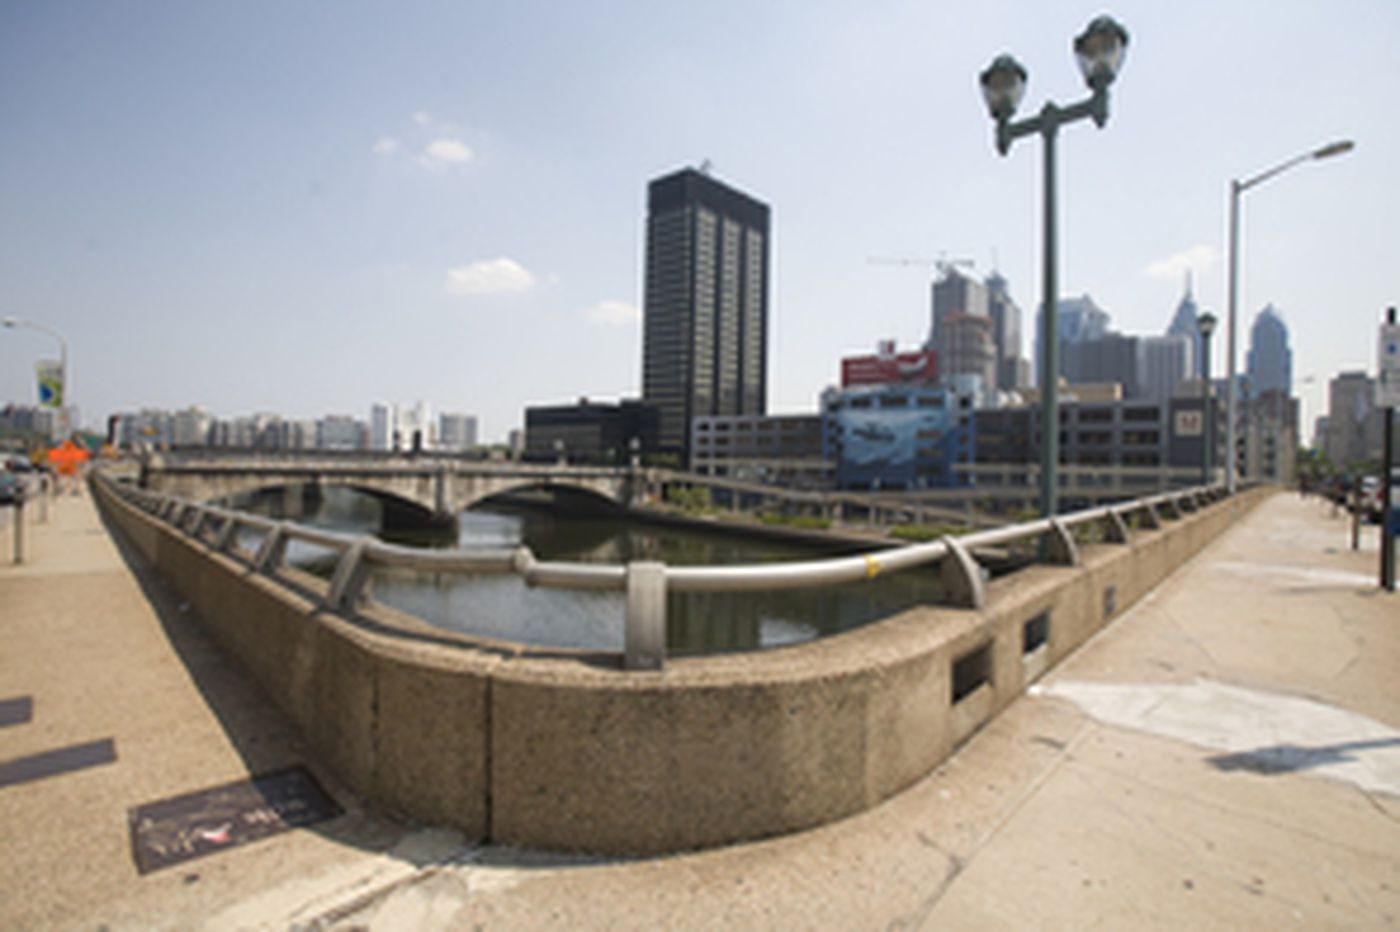 Chestnut Street bridge over the Schuylkill to close for a year